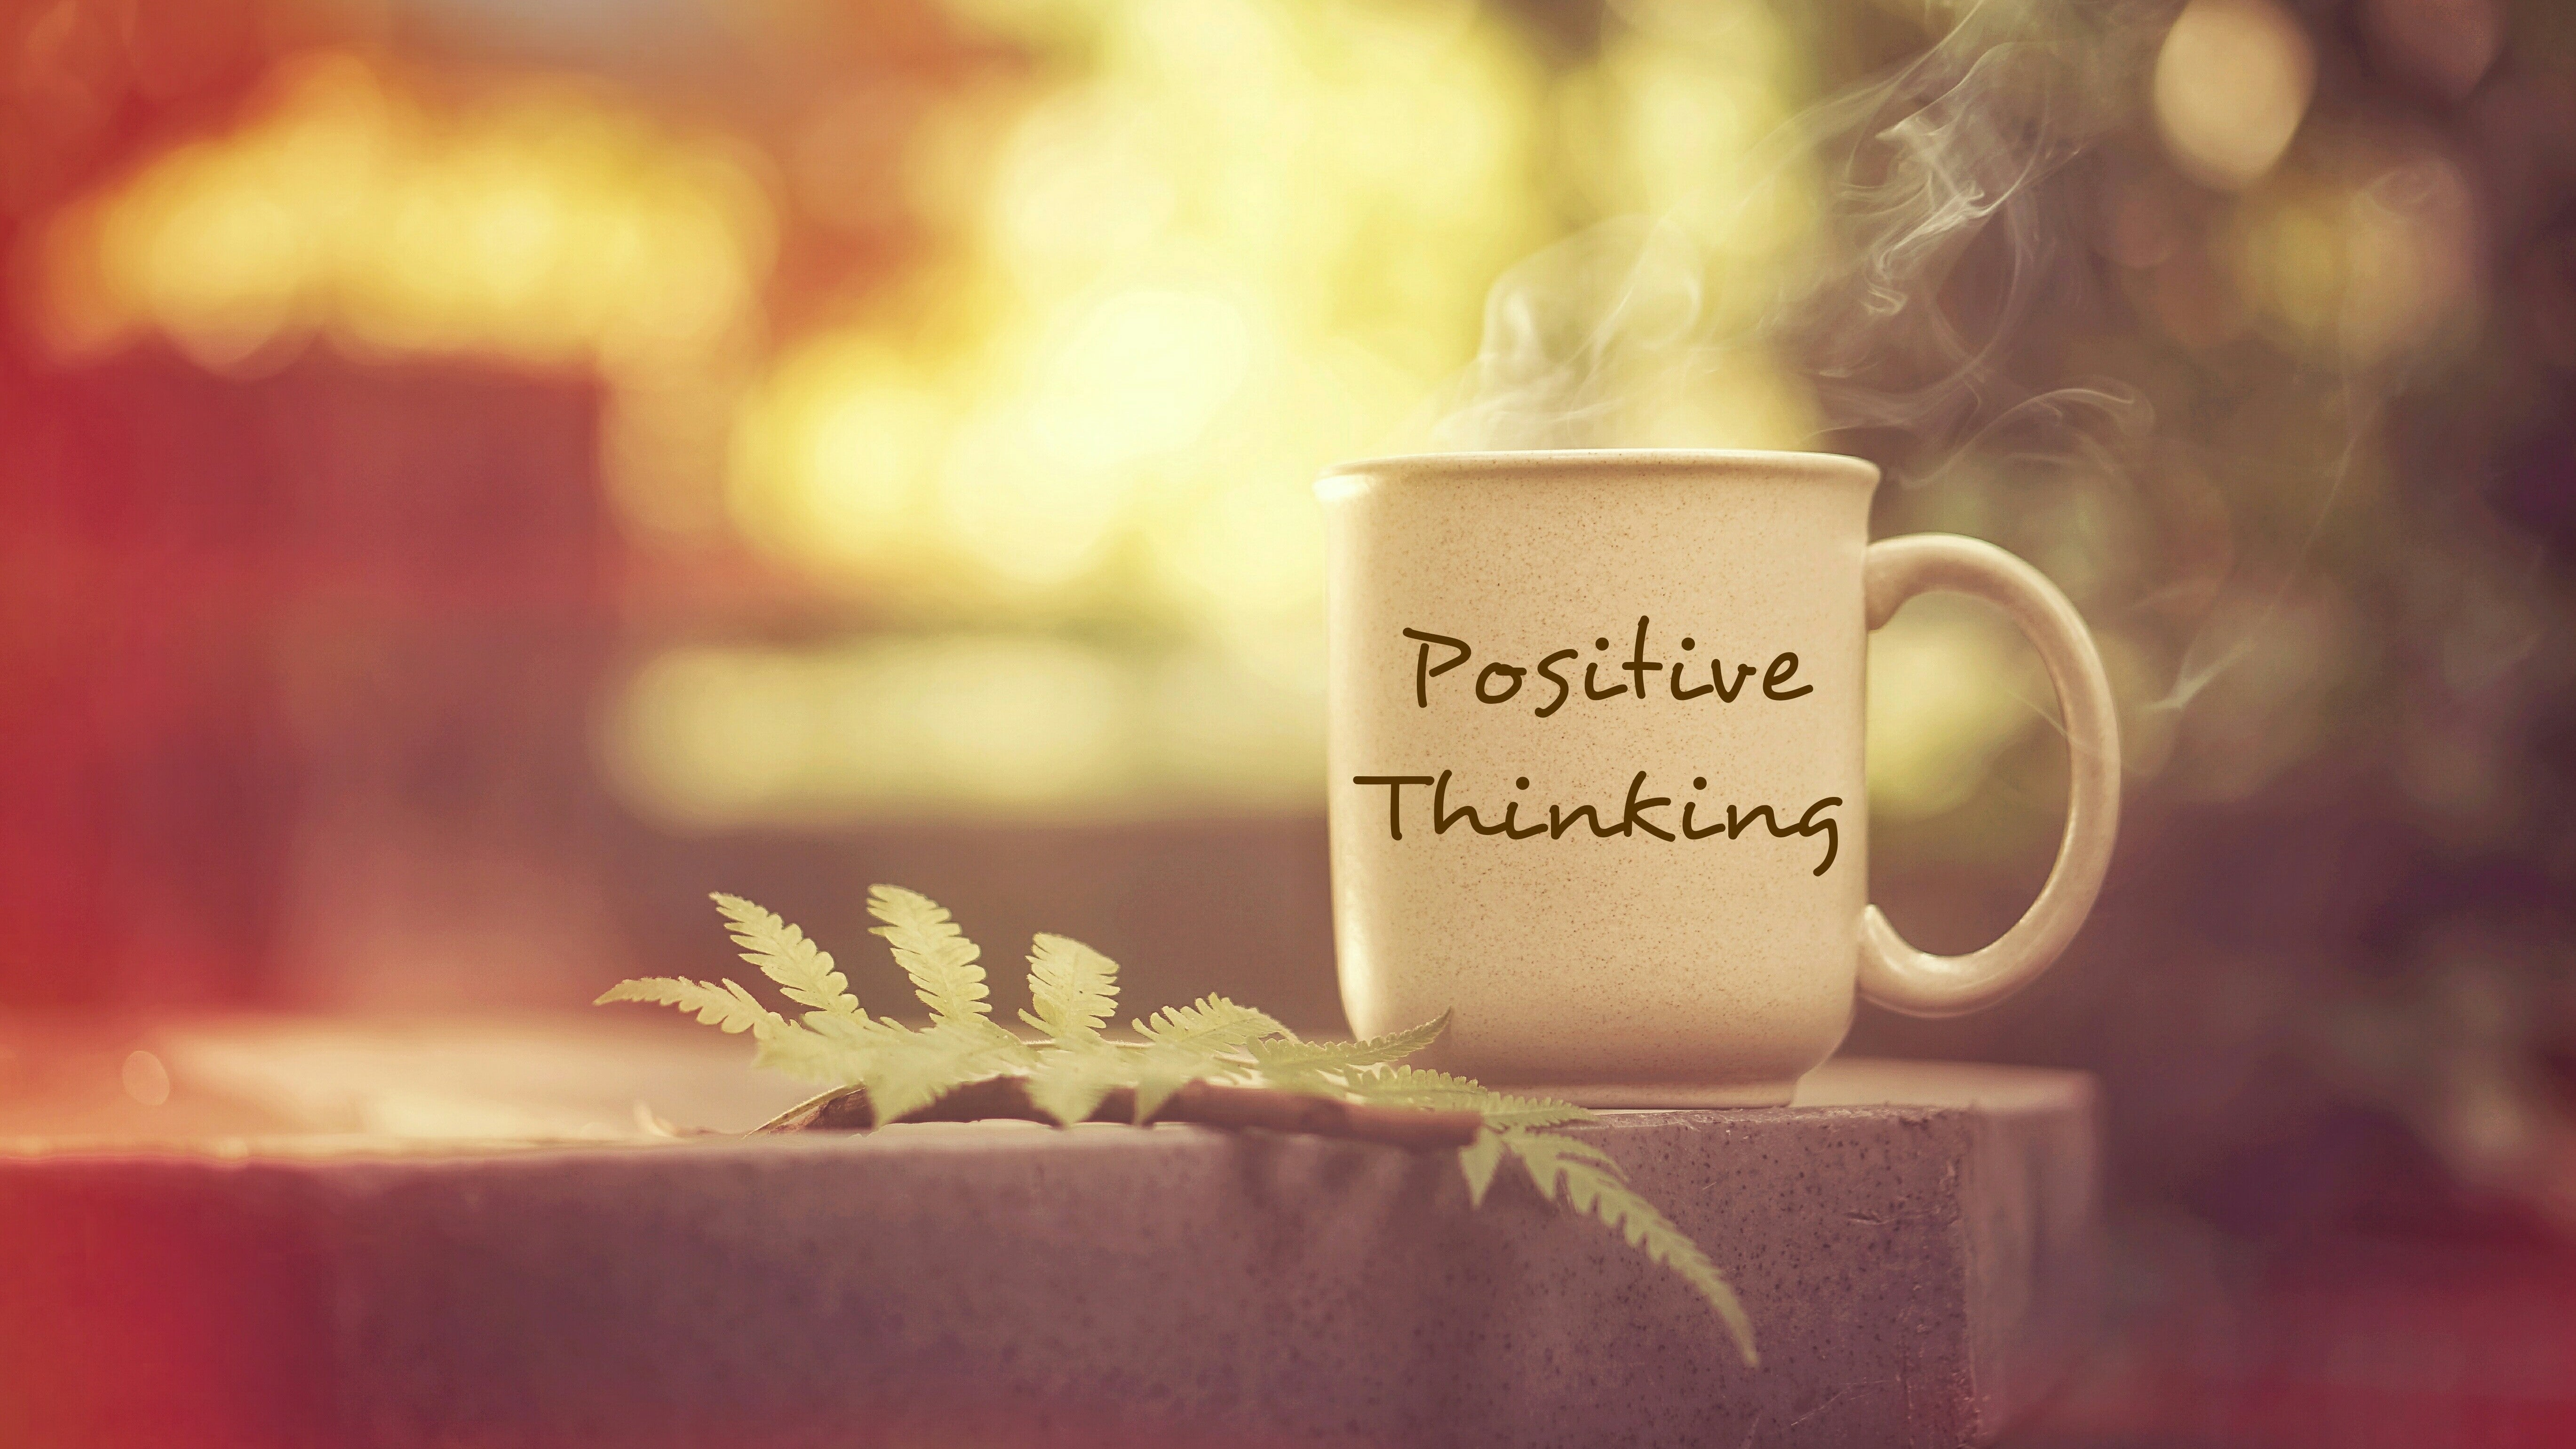 Why Too Much Positive Thinking Can Be Counterproductive